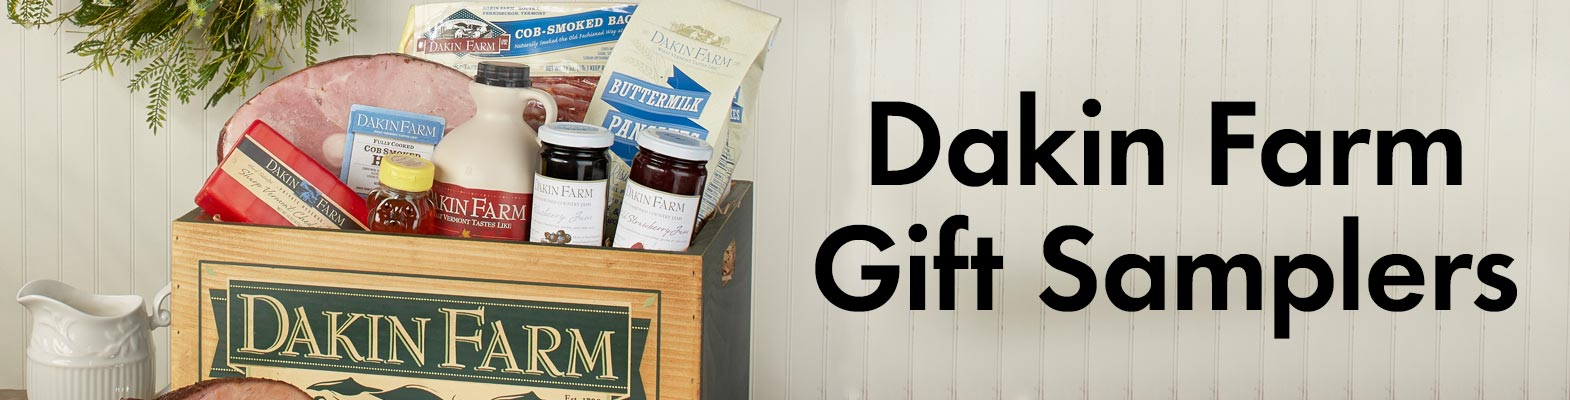 Gift Sampler Products